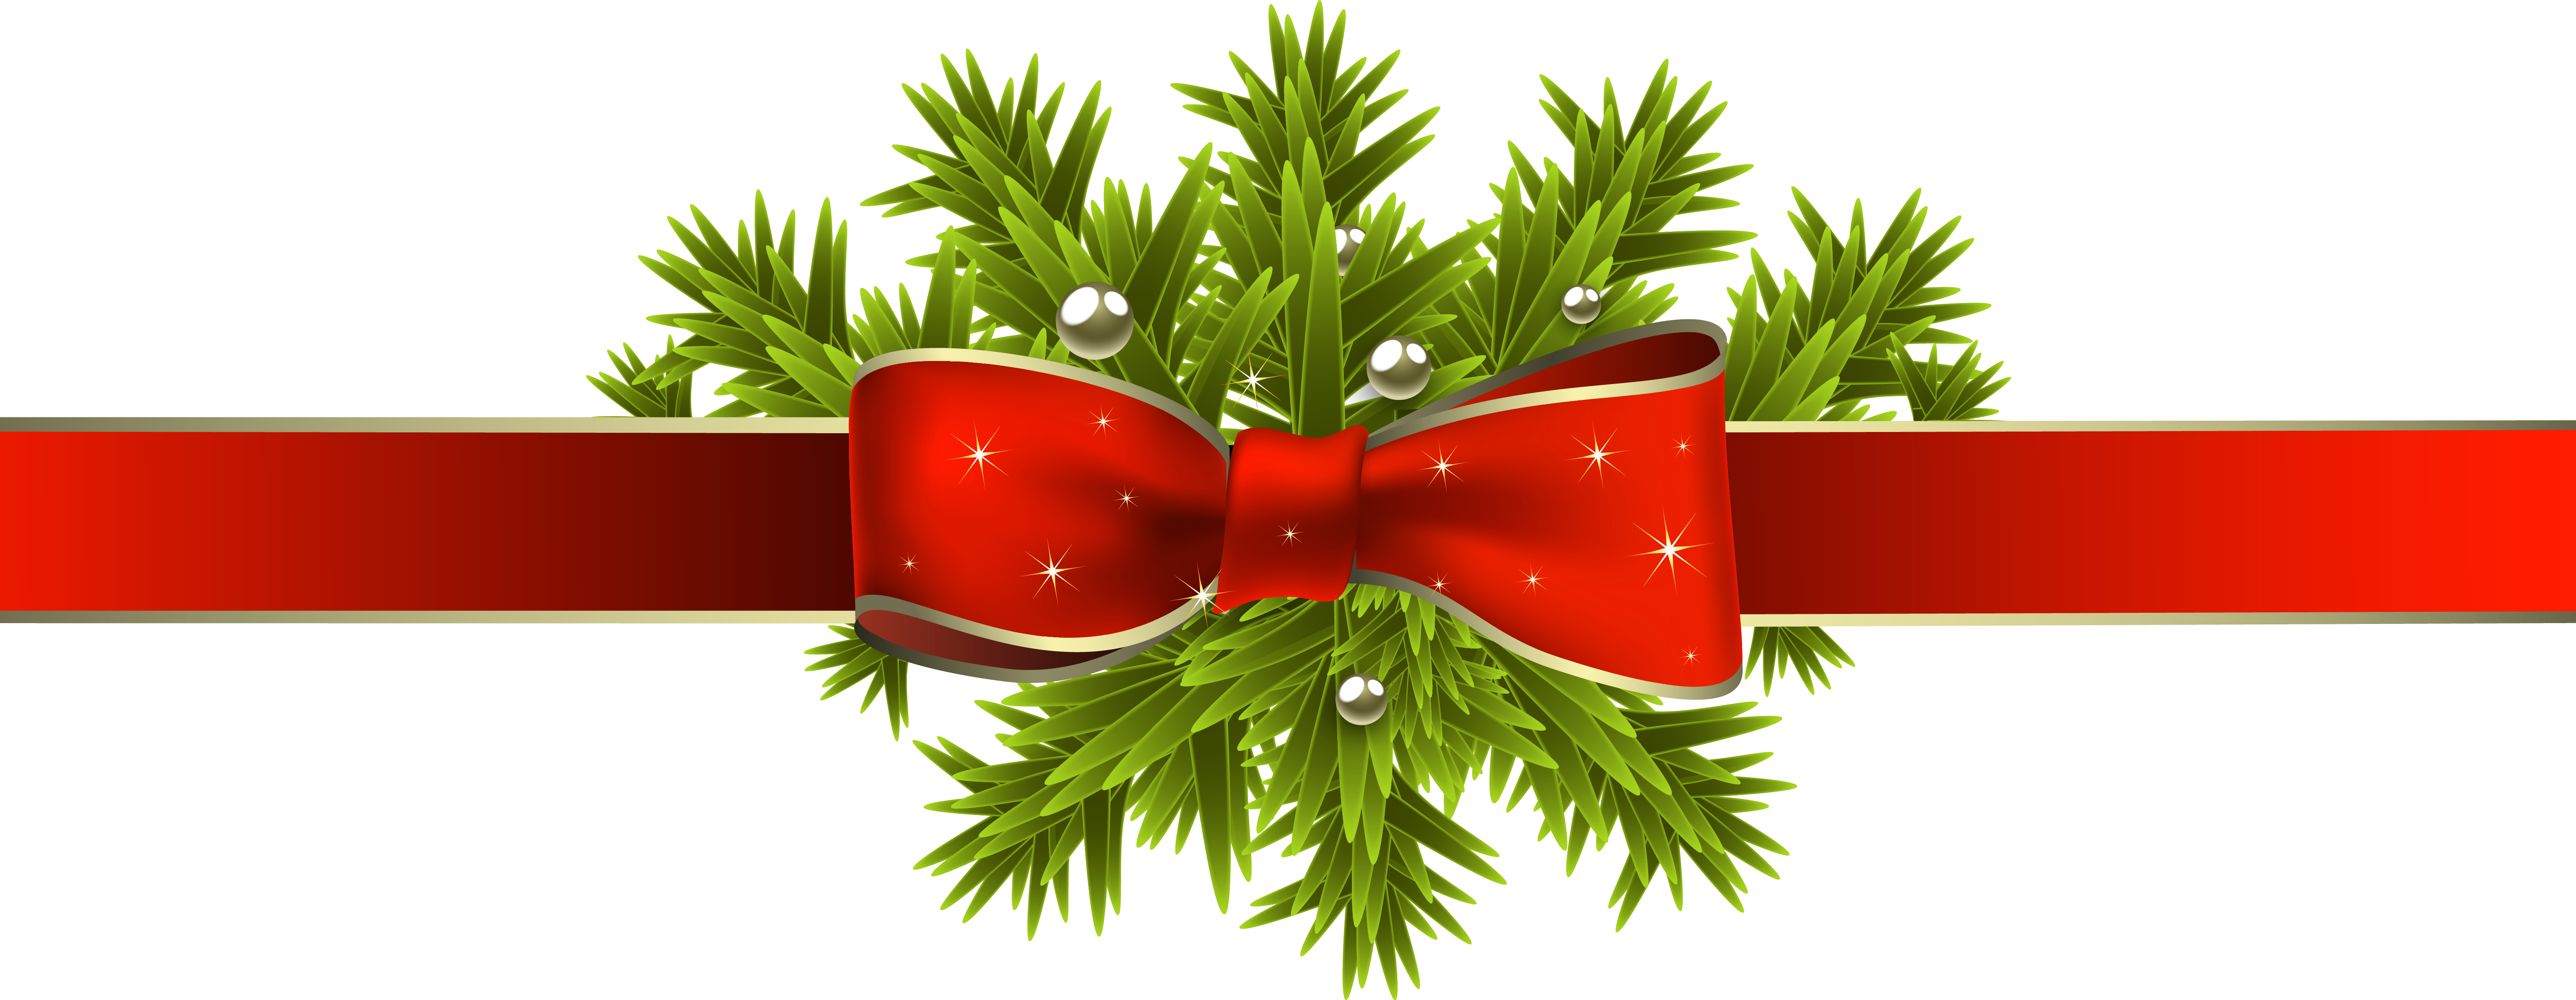 Christmas Decoration Png - Merry Christmas And Happy New Year Wishes (6172x2396)